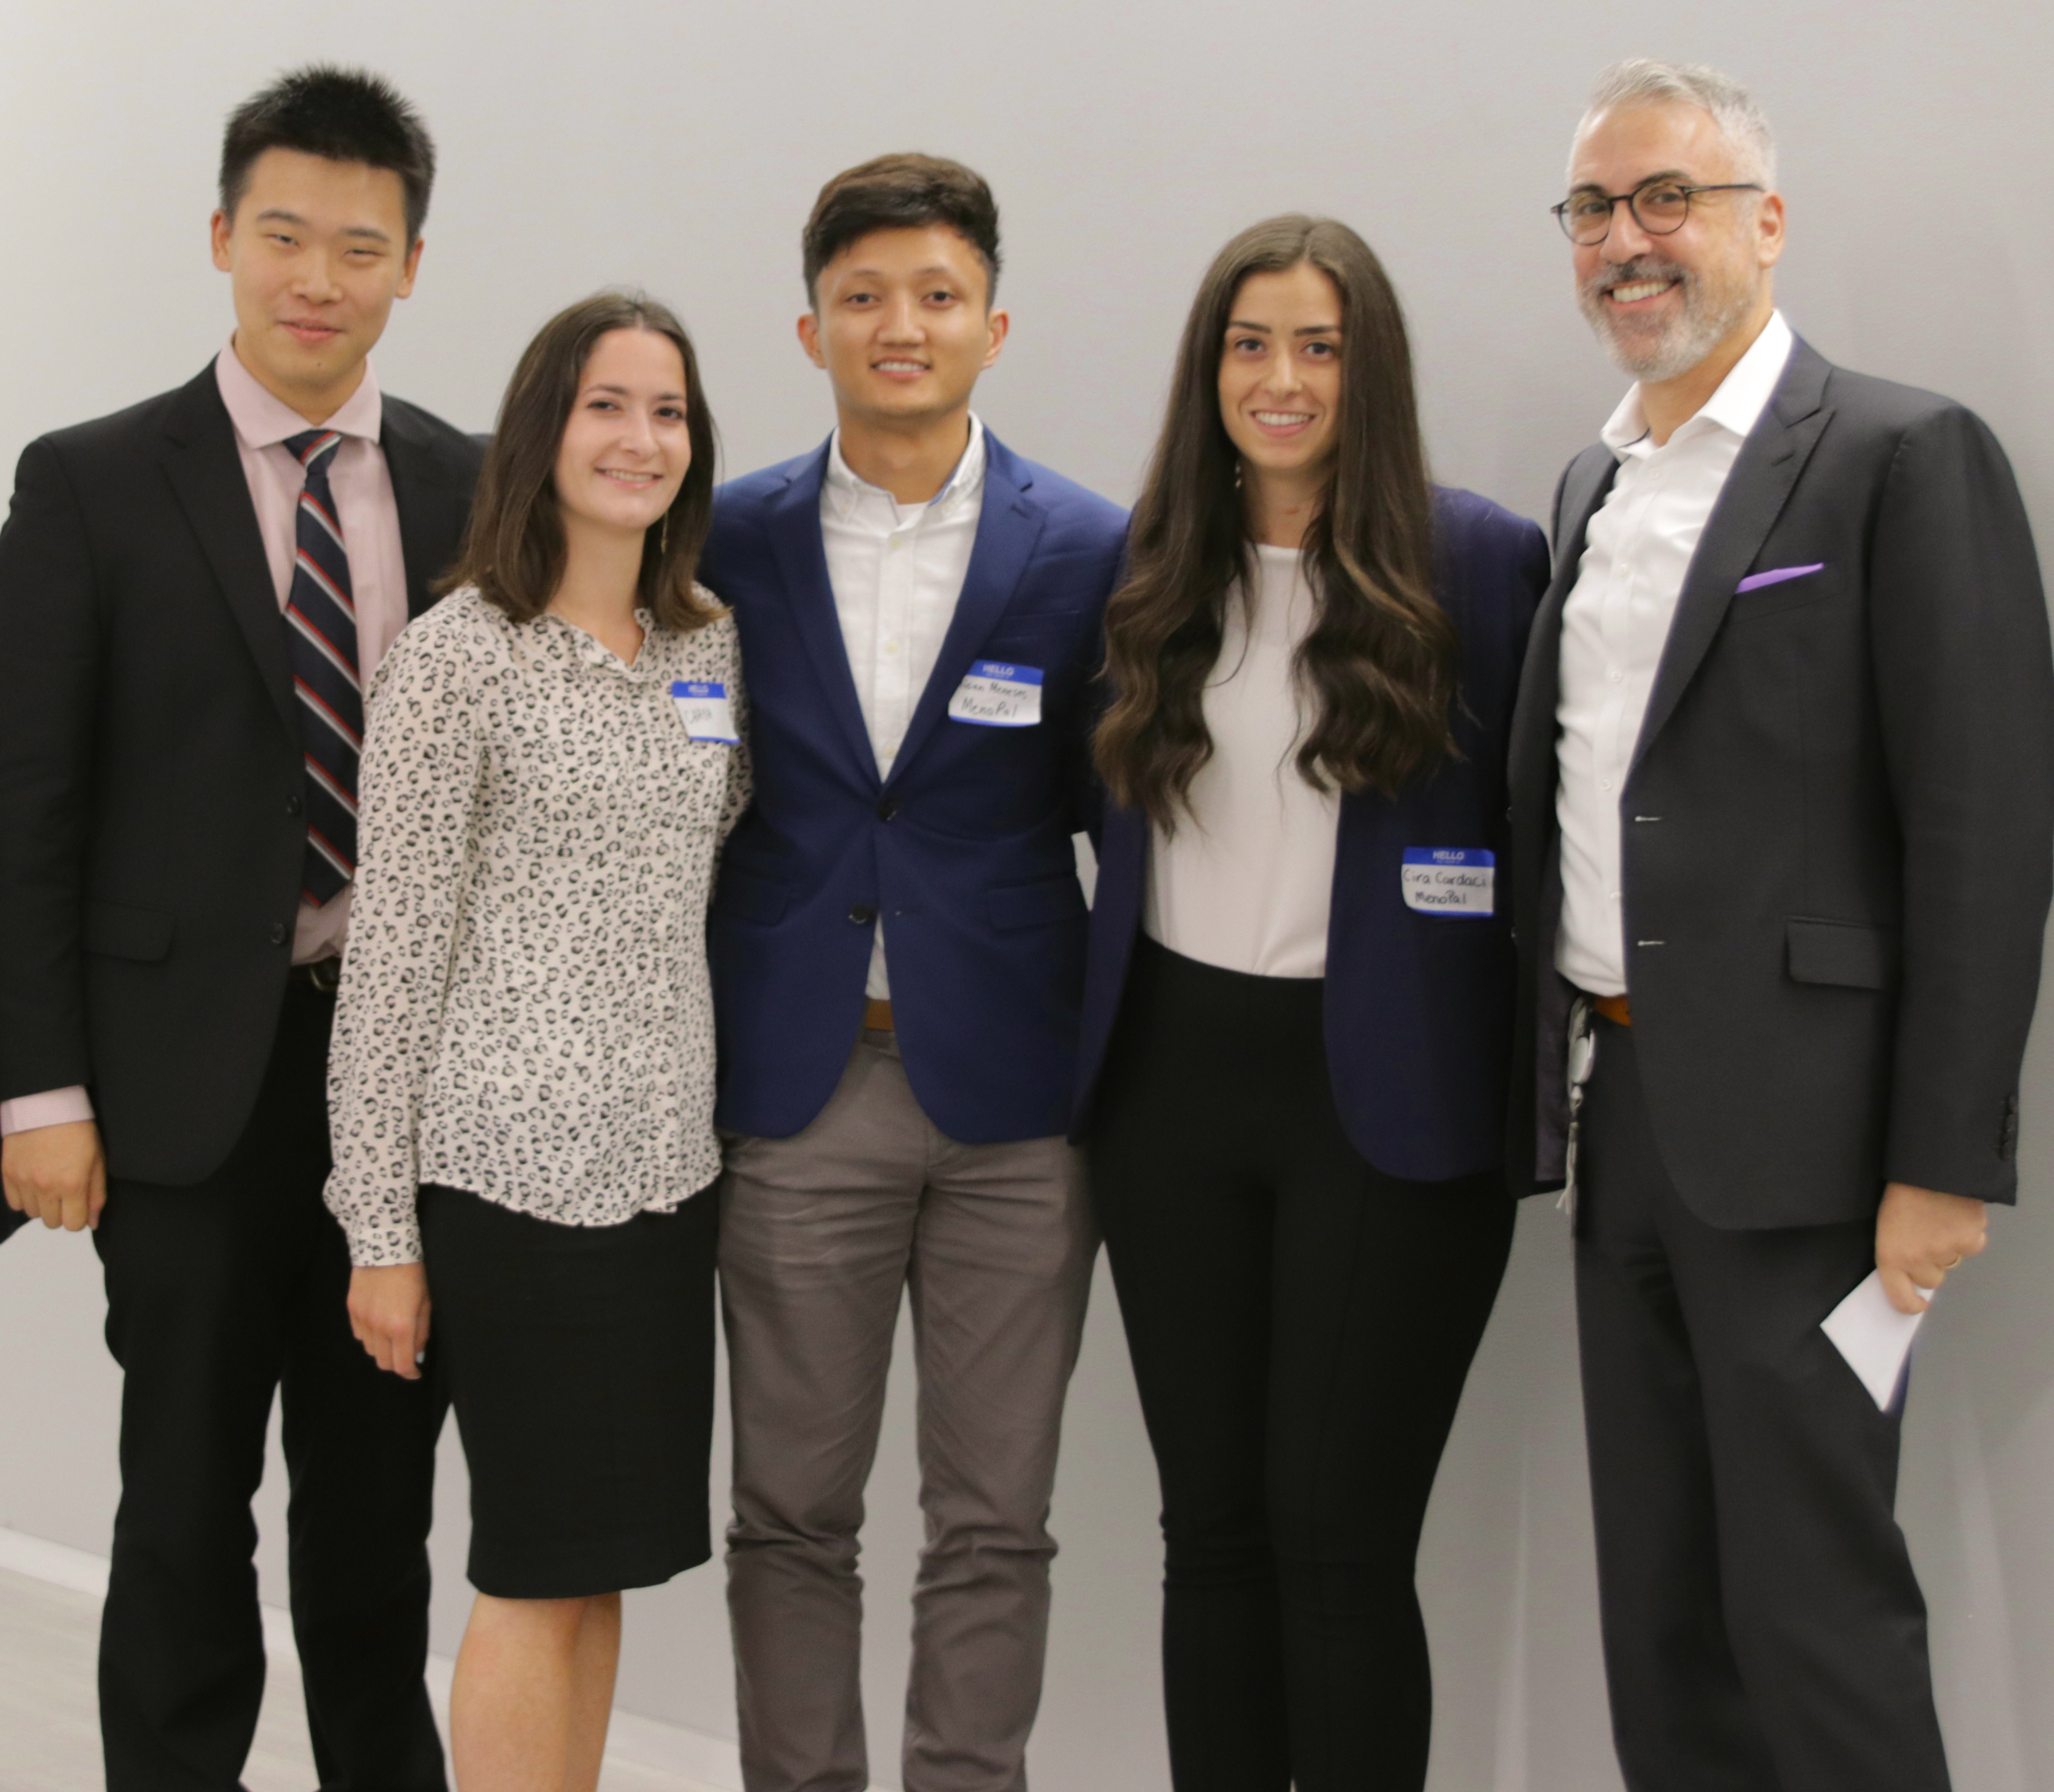 Team MenoPal (from left) Bo Guan, Chaya Edelman, Mican Meneses and Cira Cardaci with fellow CCNY alum and Nestle SHIELD senior medical director and head of medical innovation Dr. Warren Winkelman.